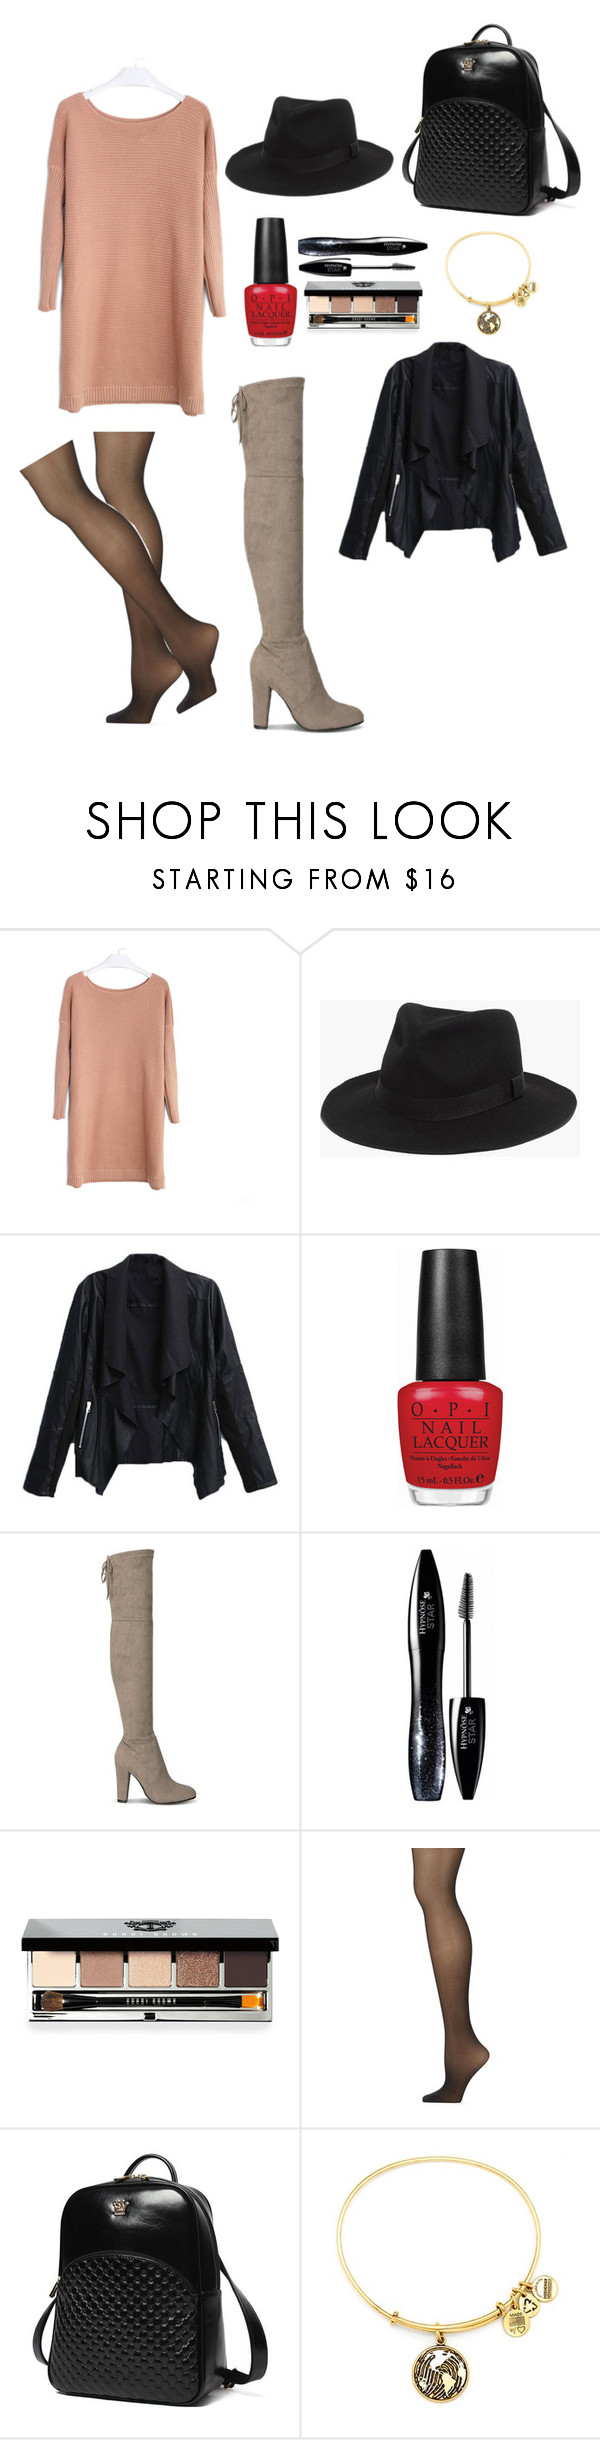 """""""Comfy in Leather"""" by vivianrose-11 on Polyvore featuring Madewell, OPI, Lancôme, Bobbi Brown Cosmetics, Calvin Klein, Princess Carousel and Alex and Ani"""